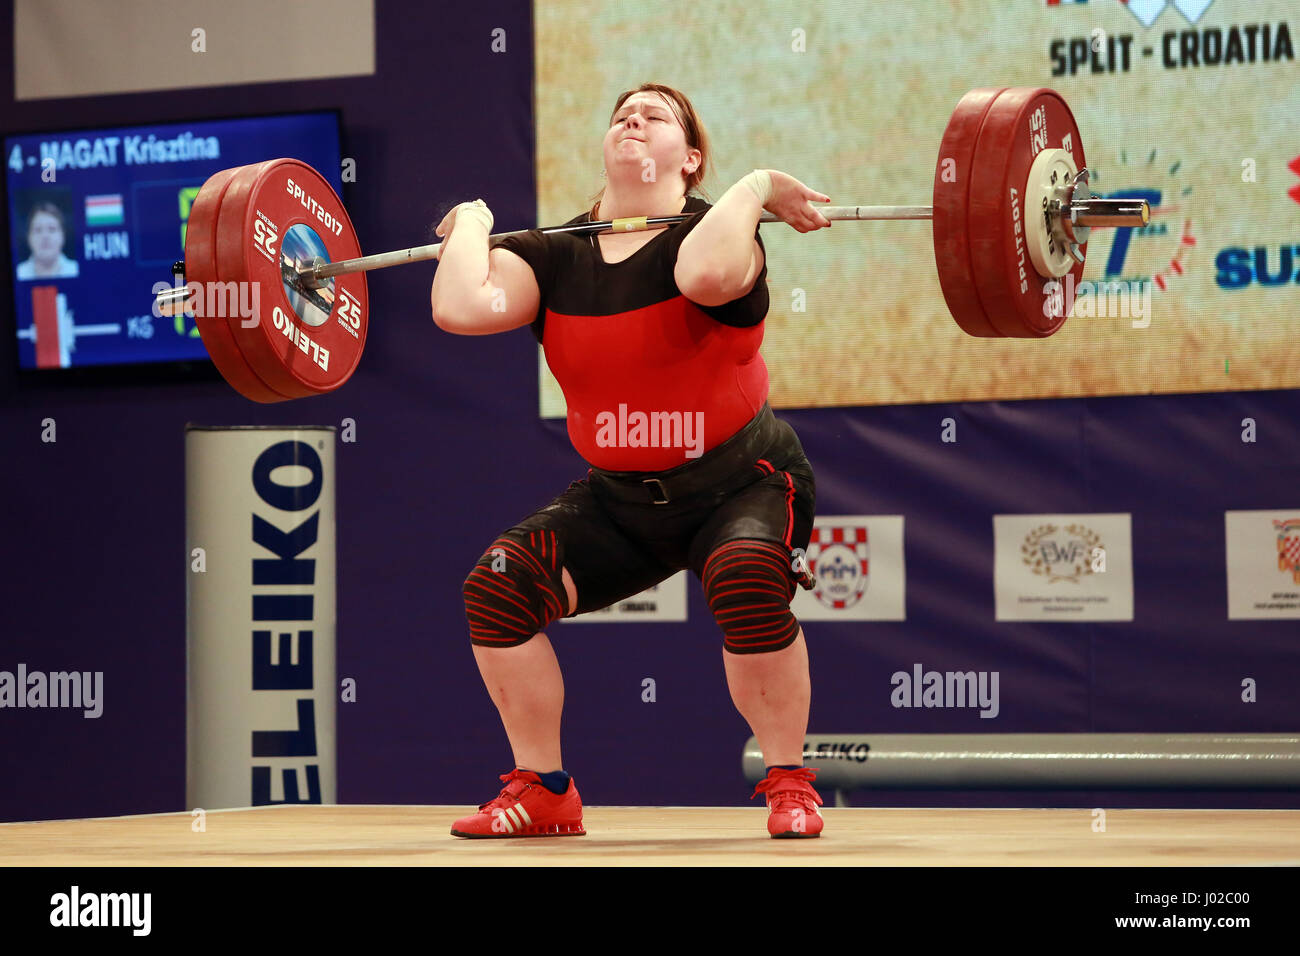 Split, Croatia. 8th Apr, 2017. Krisztina Magat of Hungary competes during competition of the Women's  90kg at - Stock Image